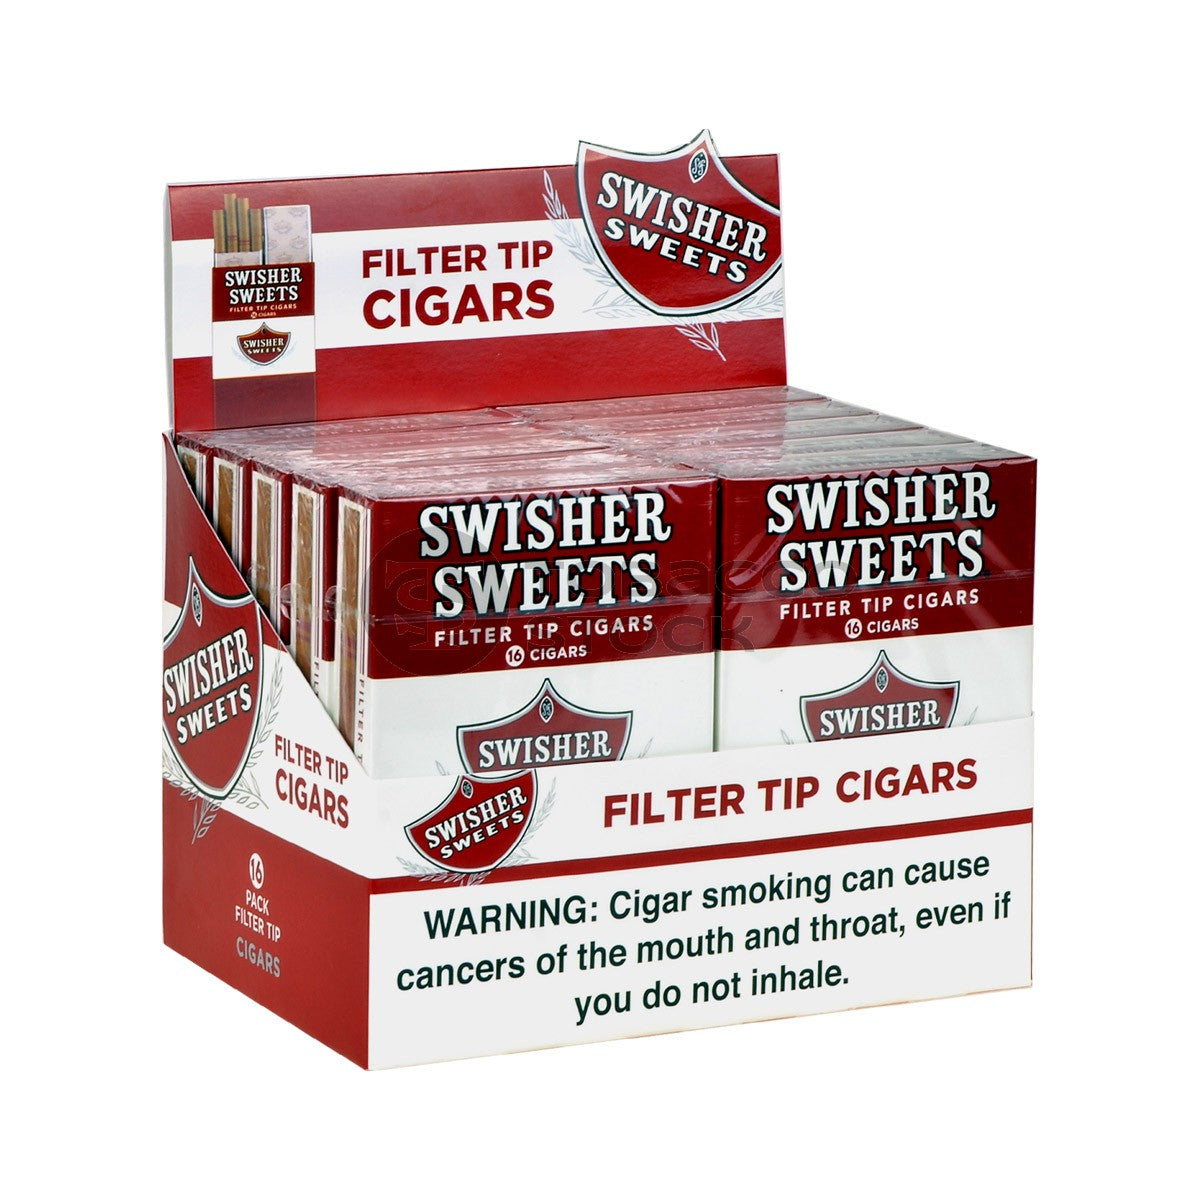 Swisher Sweets Regular Filter Tip Cigars